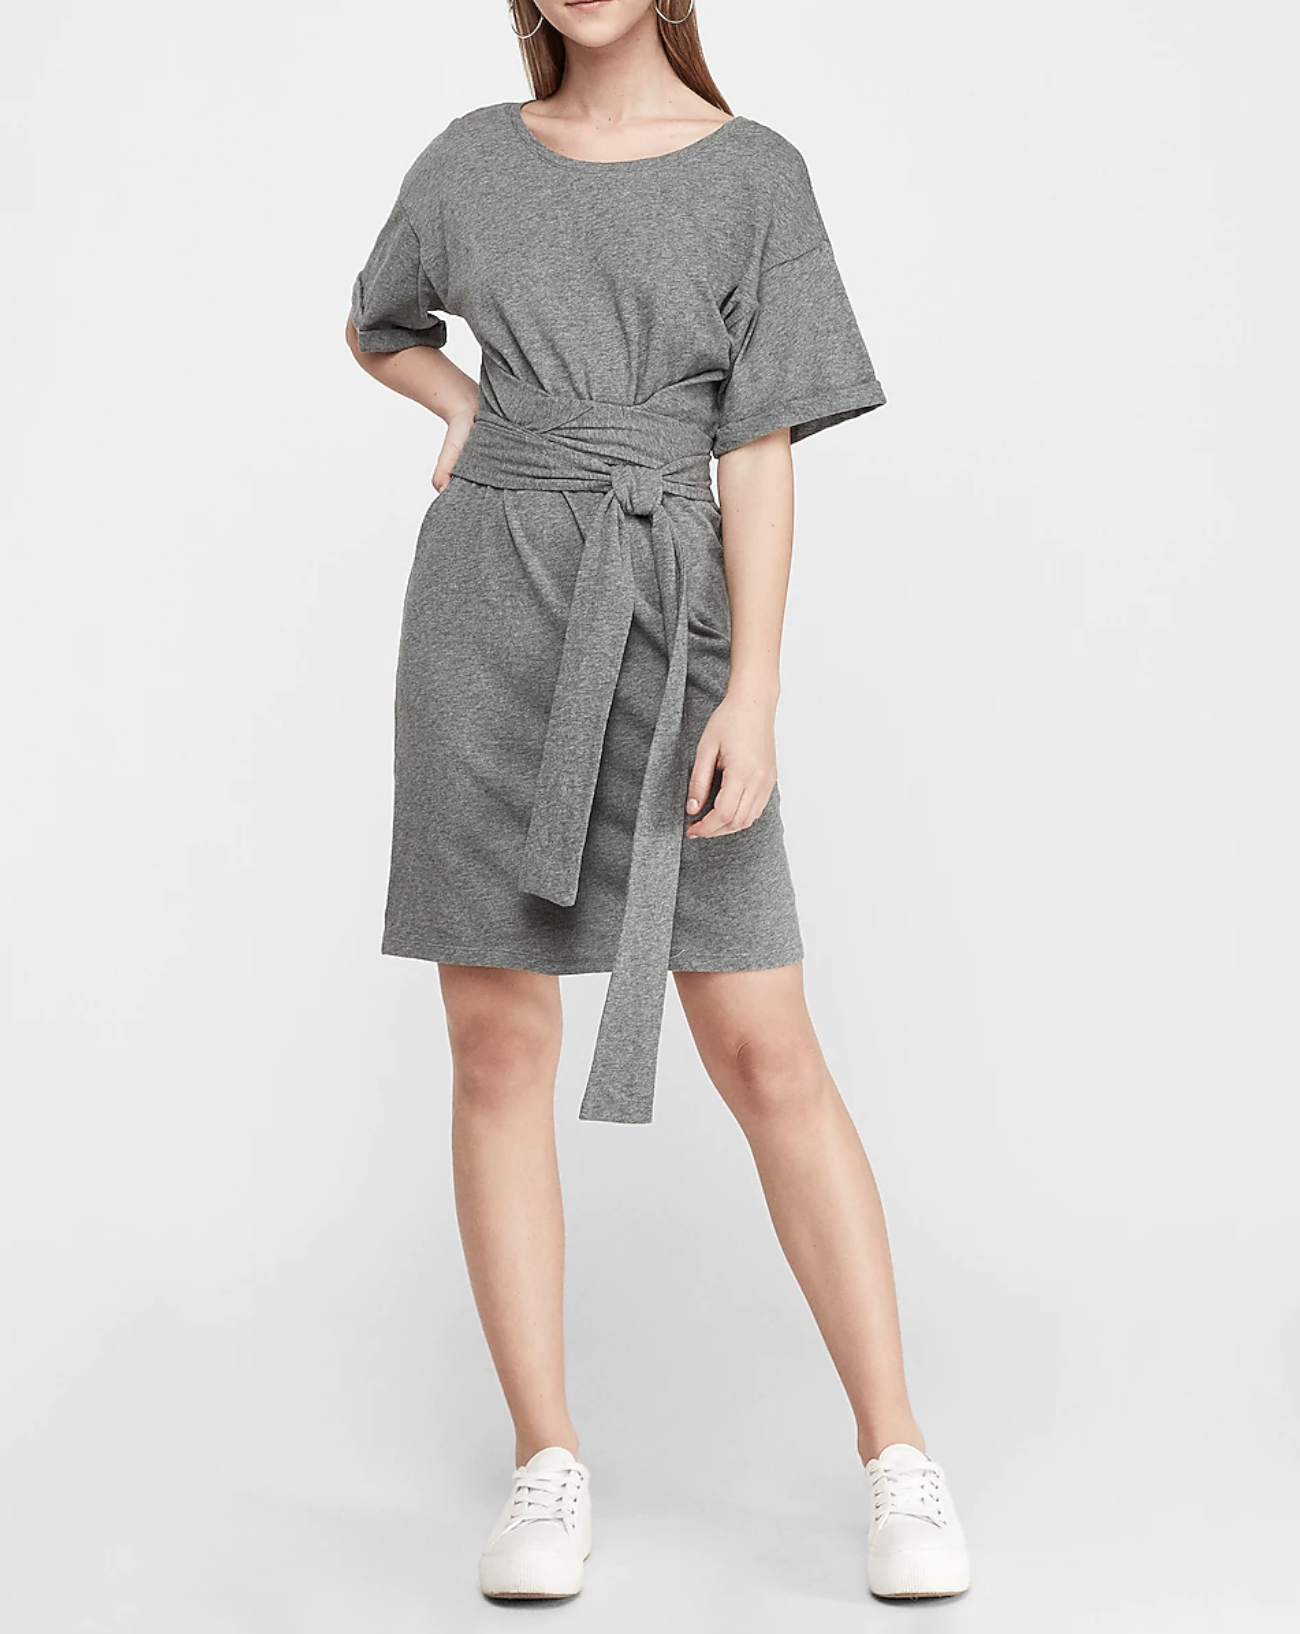 A dress with wide short sleeves that stop above the elbow and a long waist belt wrapped into a hanging sash at the waist. It has a curved neckline.